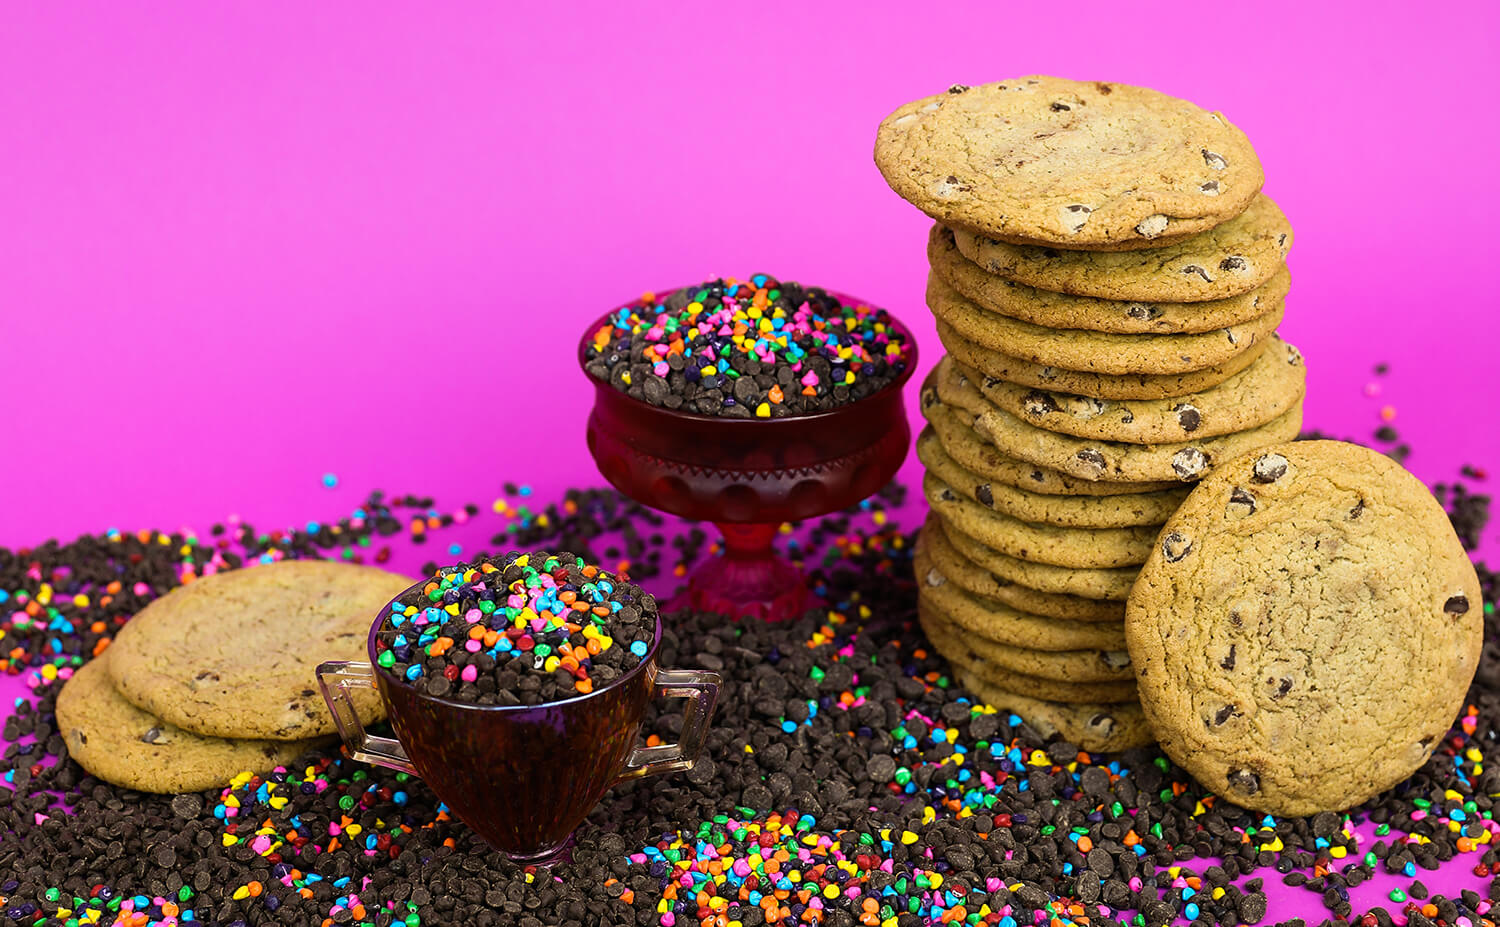 Chocolate chip cookies on pink background